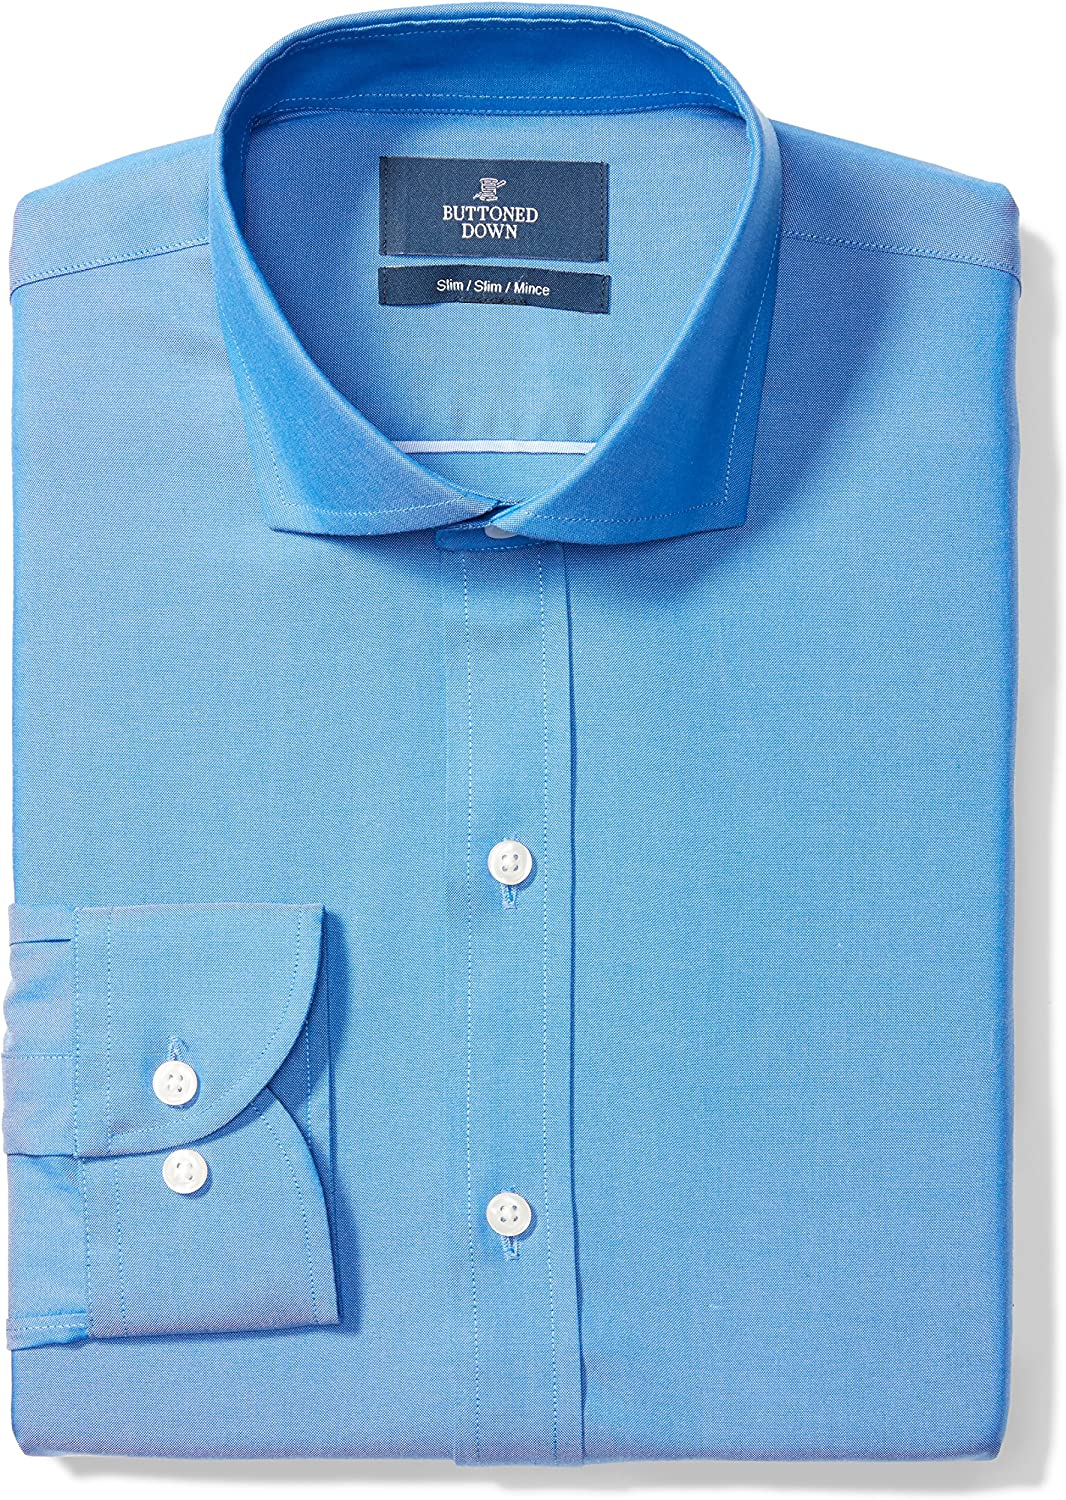 Supima Cotton Non-Iron Brand BUTTONED DOWN Mens Slim Fit Cutaway-Collar Solid Pinpoint Dress Shirt